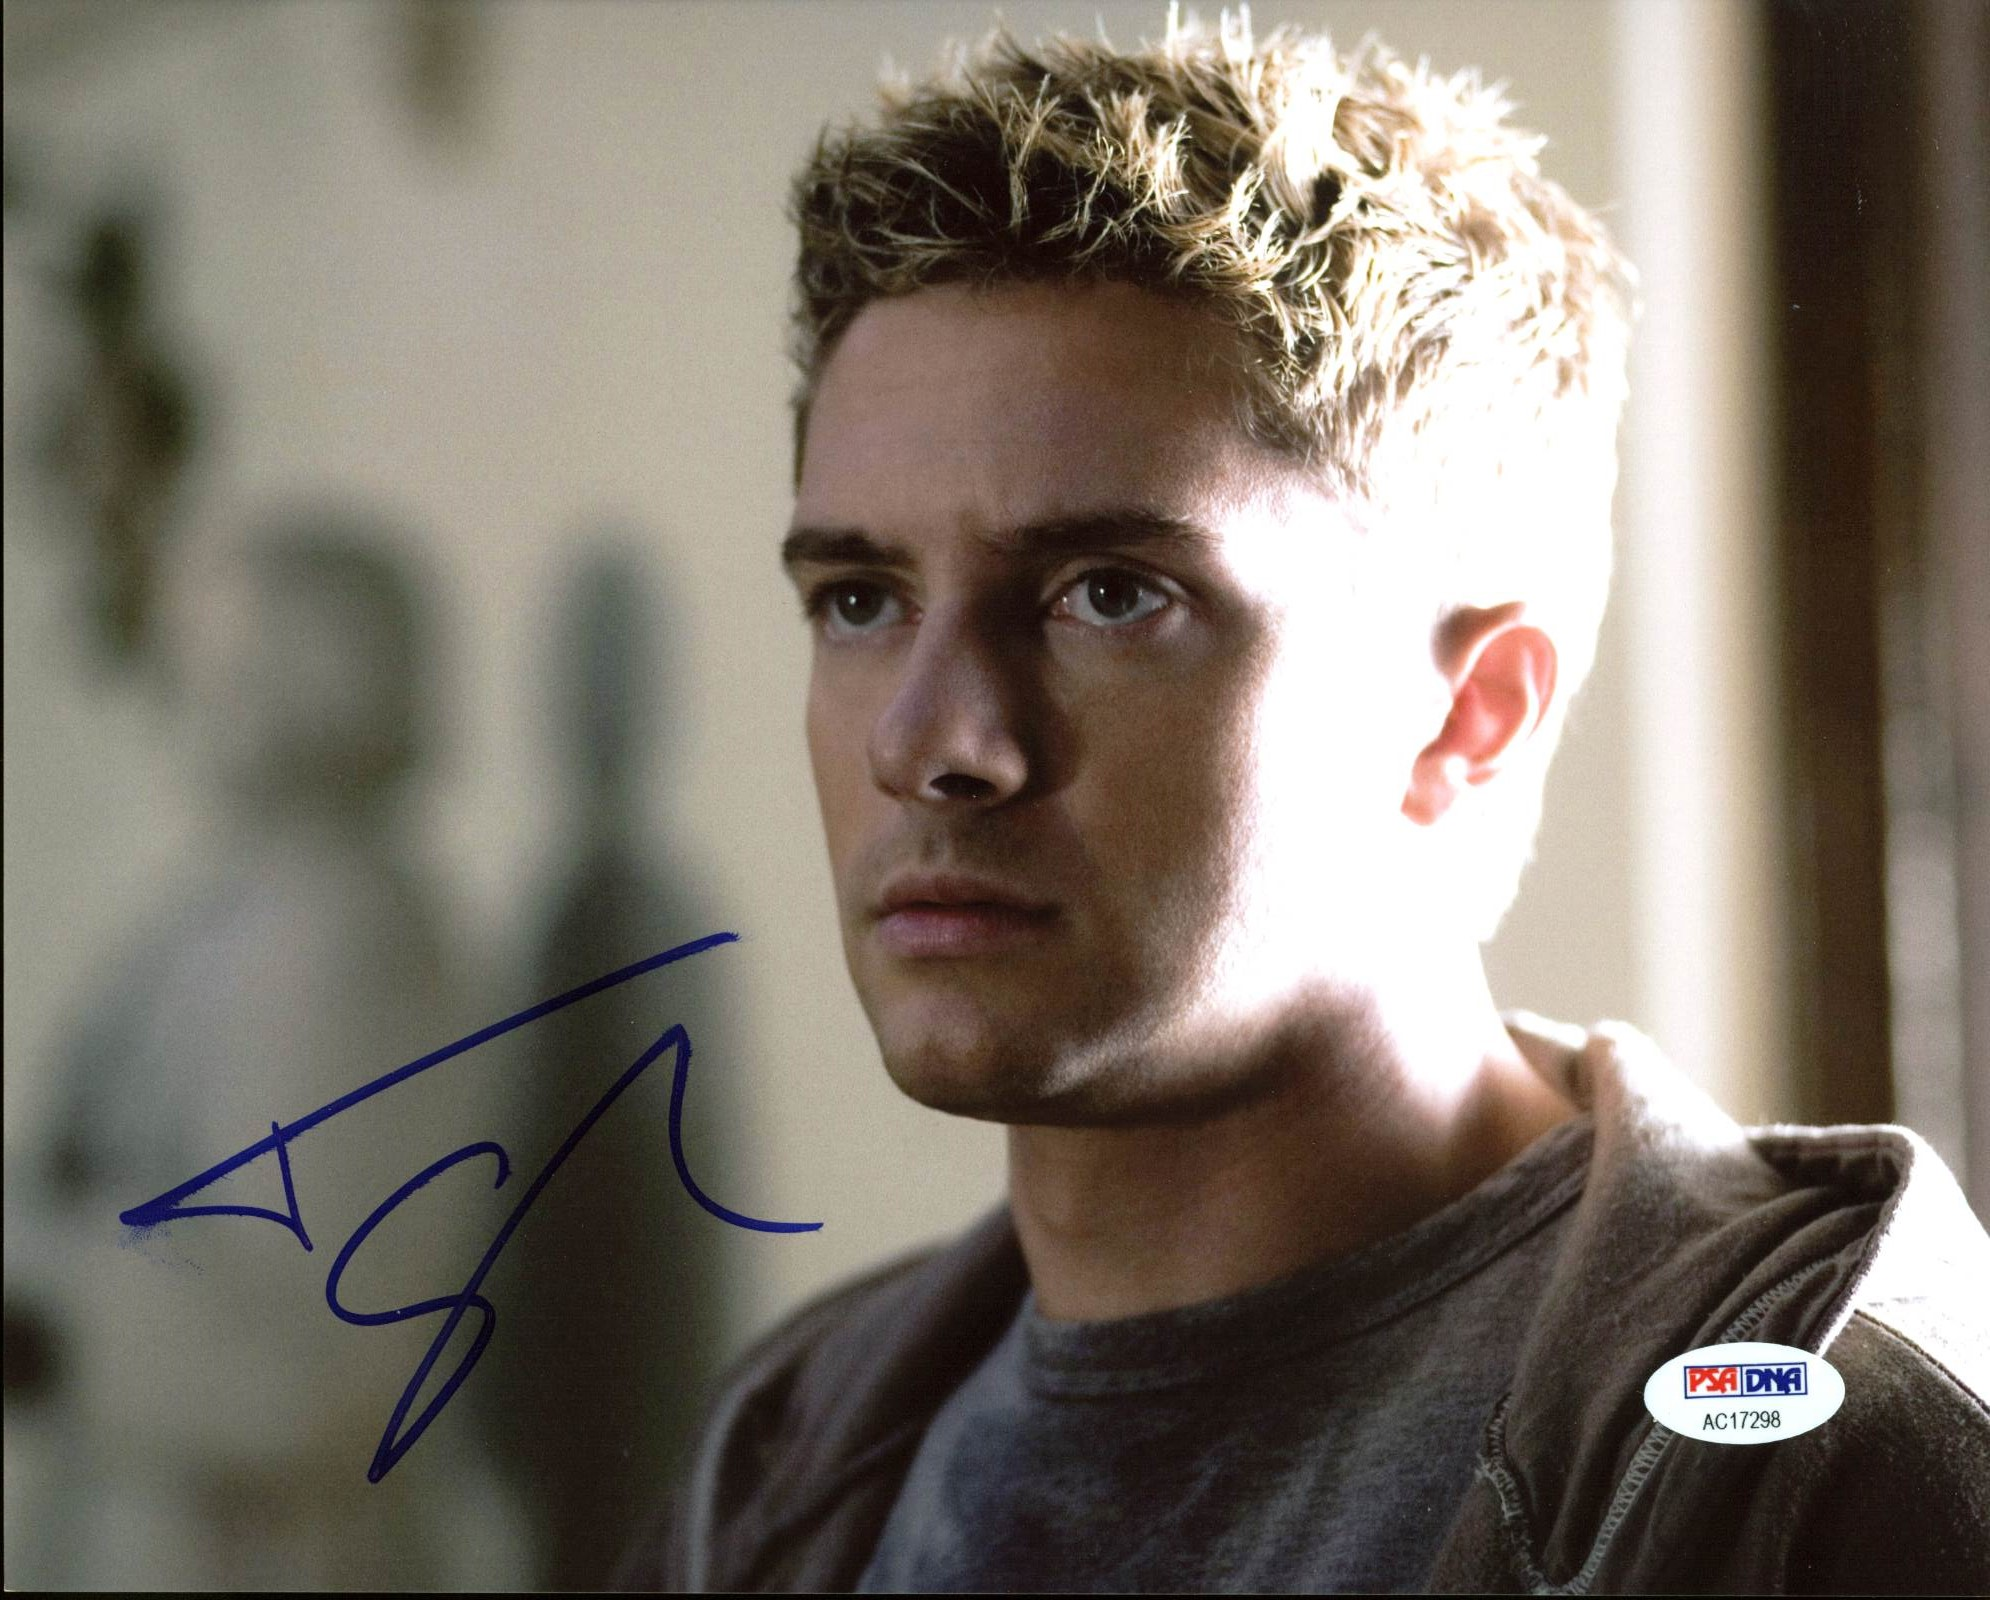 Topher Grace Spiderman 3 Authentic Signed 8X10 Photo PSA/DNA #AC17298